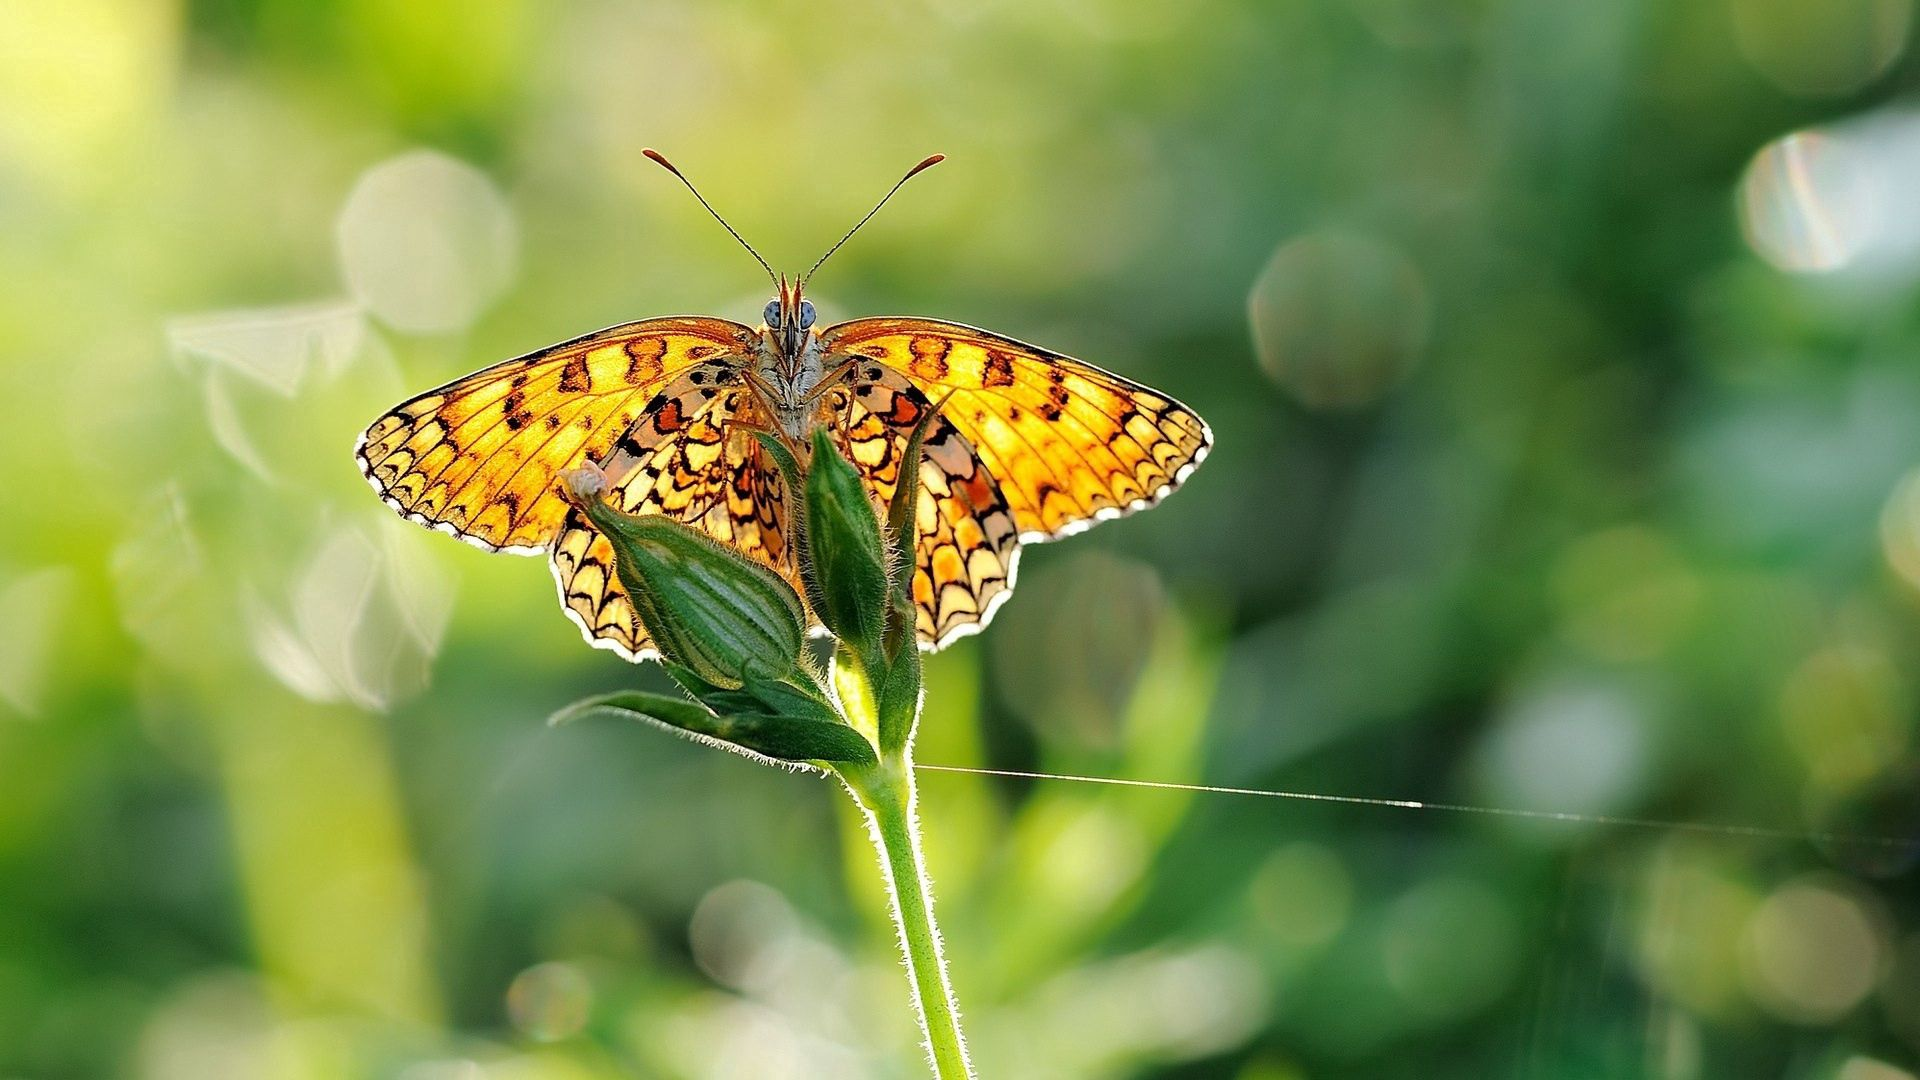 70533 Screensavers and Wallpapers Butterfly for phone. Download Grass, Plant, Macro, Butterfly pictures for free